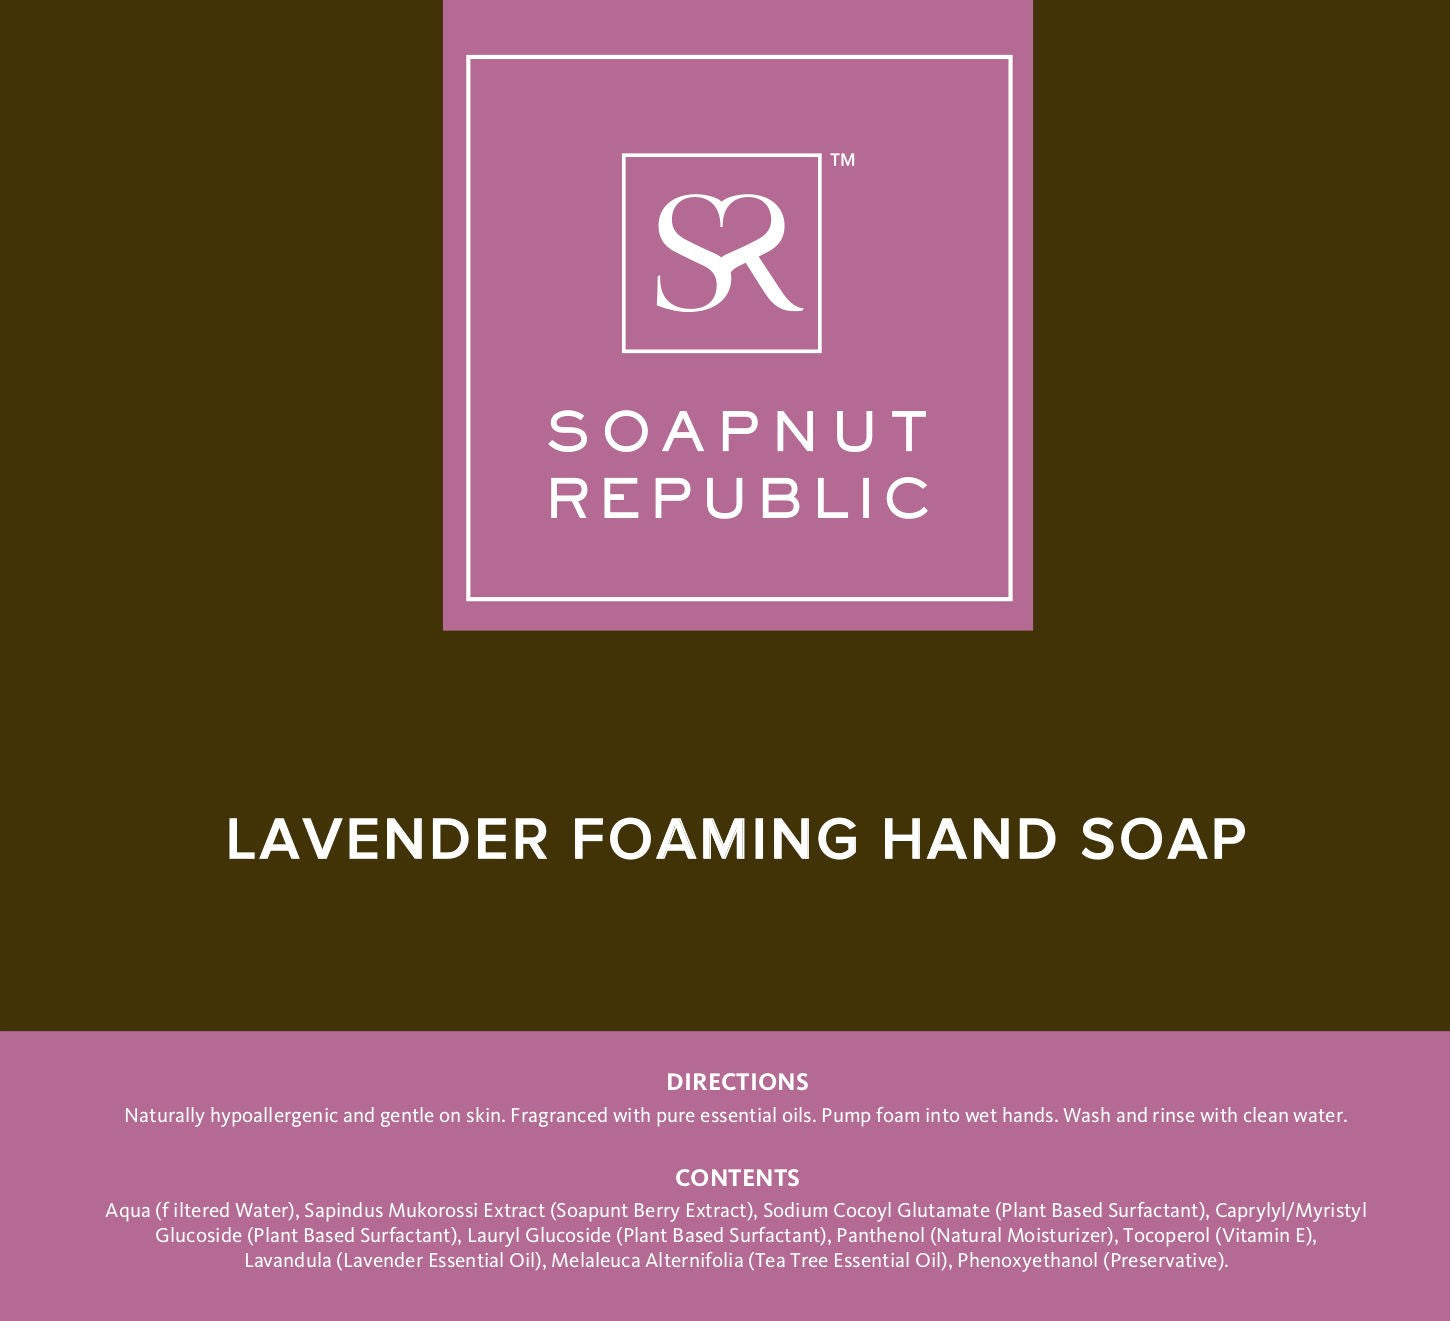 Soapnut Republic - Foaming Hand Soap with Lavender